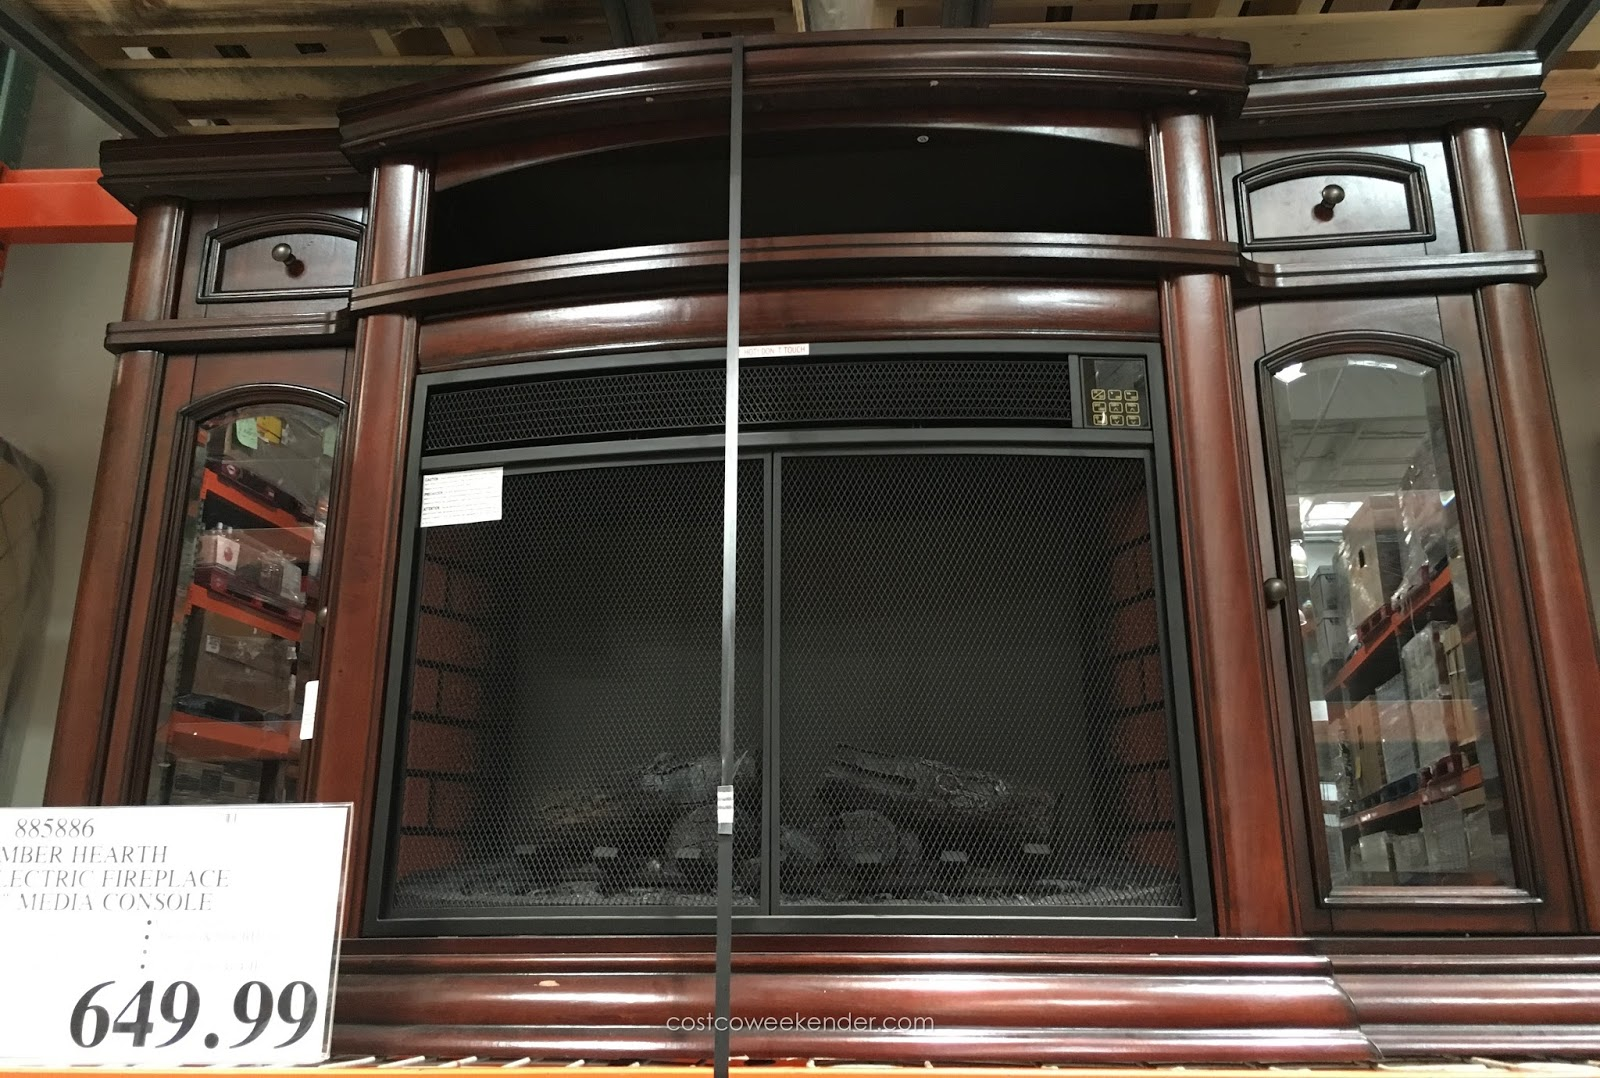 ember hearth electric media fireplace costco weekender